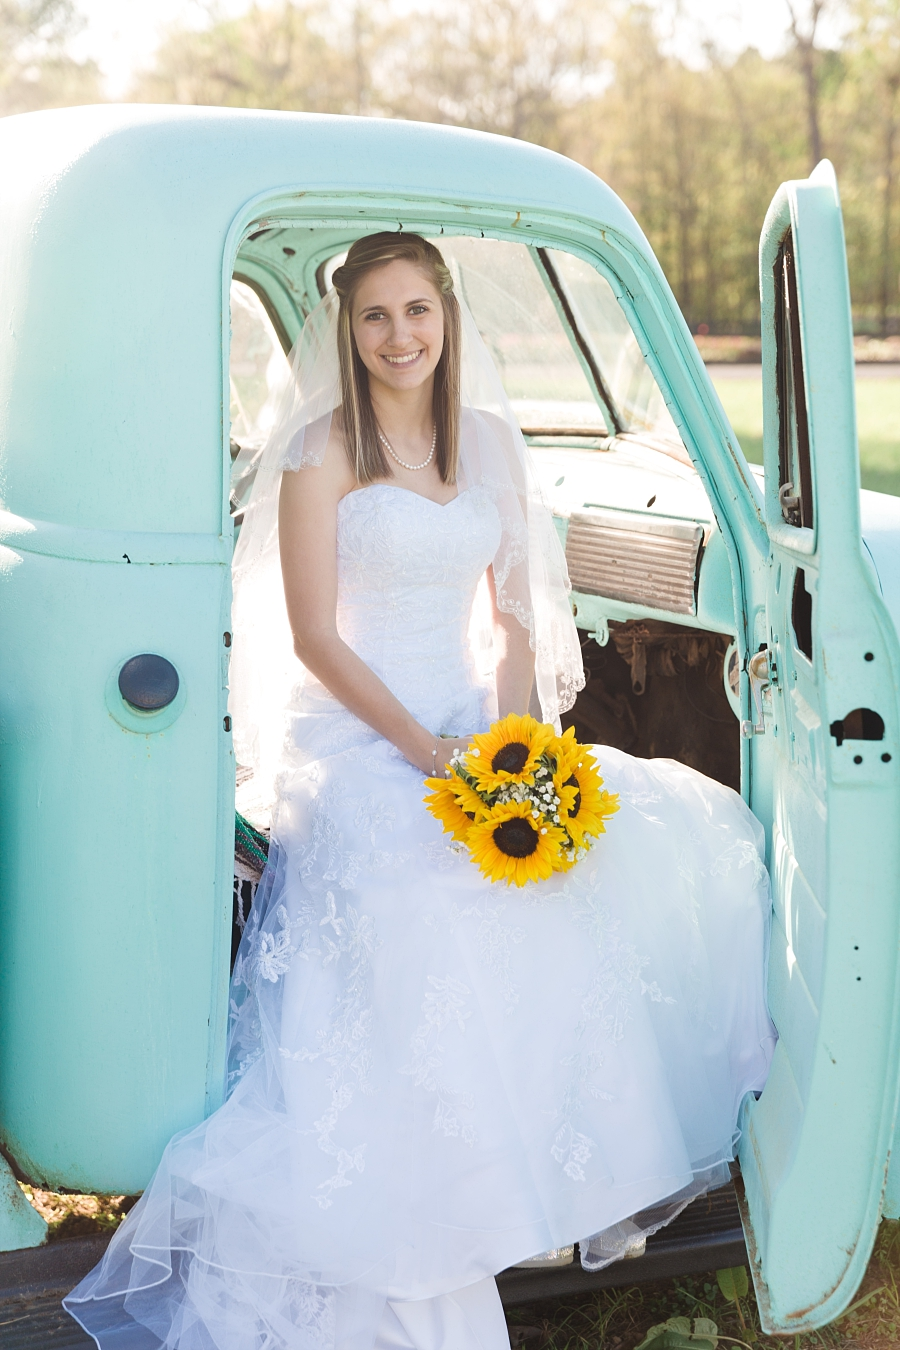 Stacy-Anderson-Photography-Carriage-House-Houston-Wedding-Photographer_0017.jpg